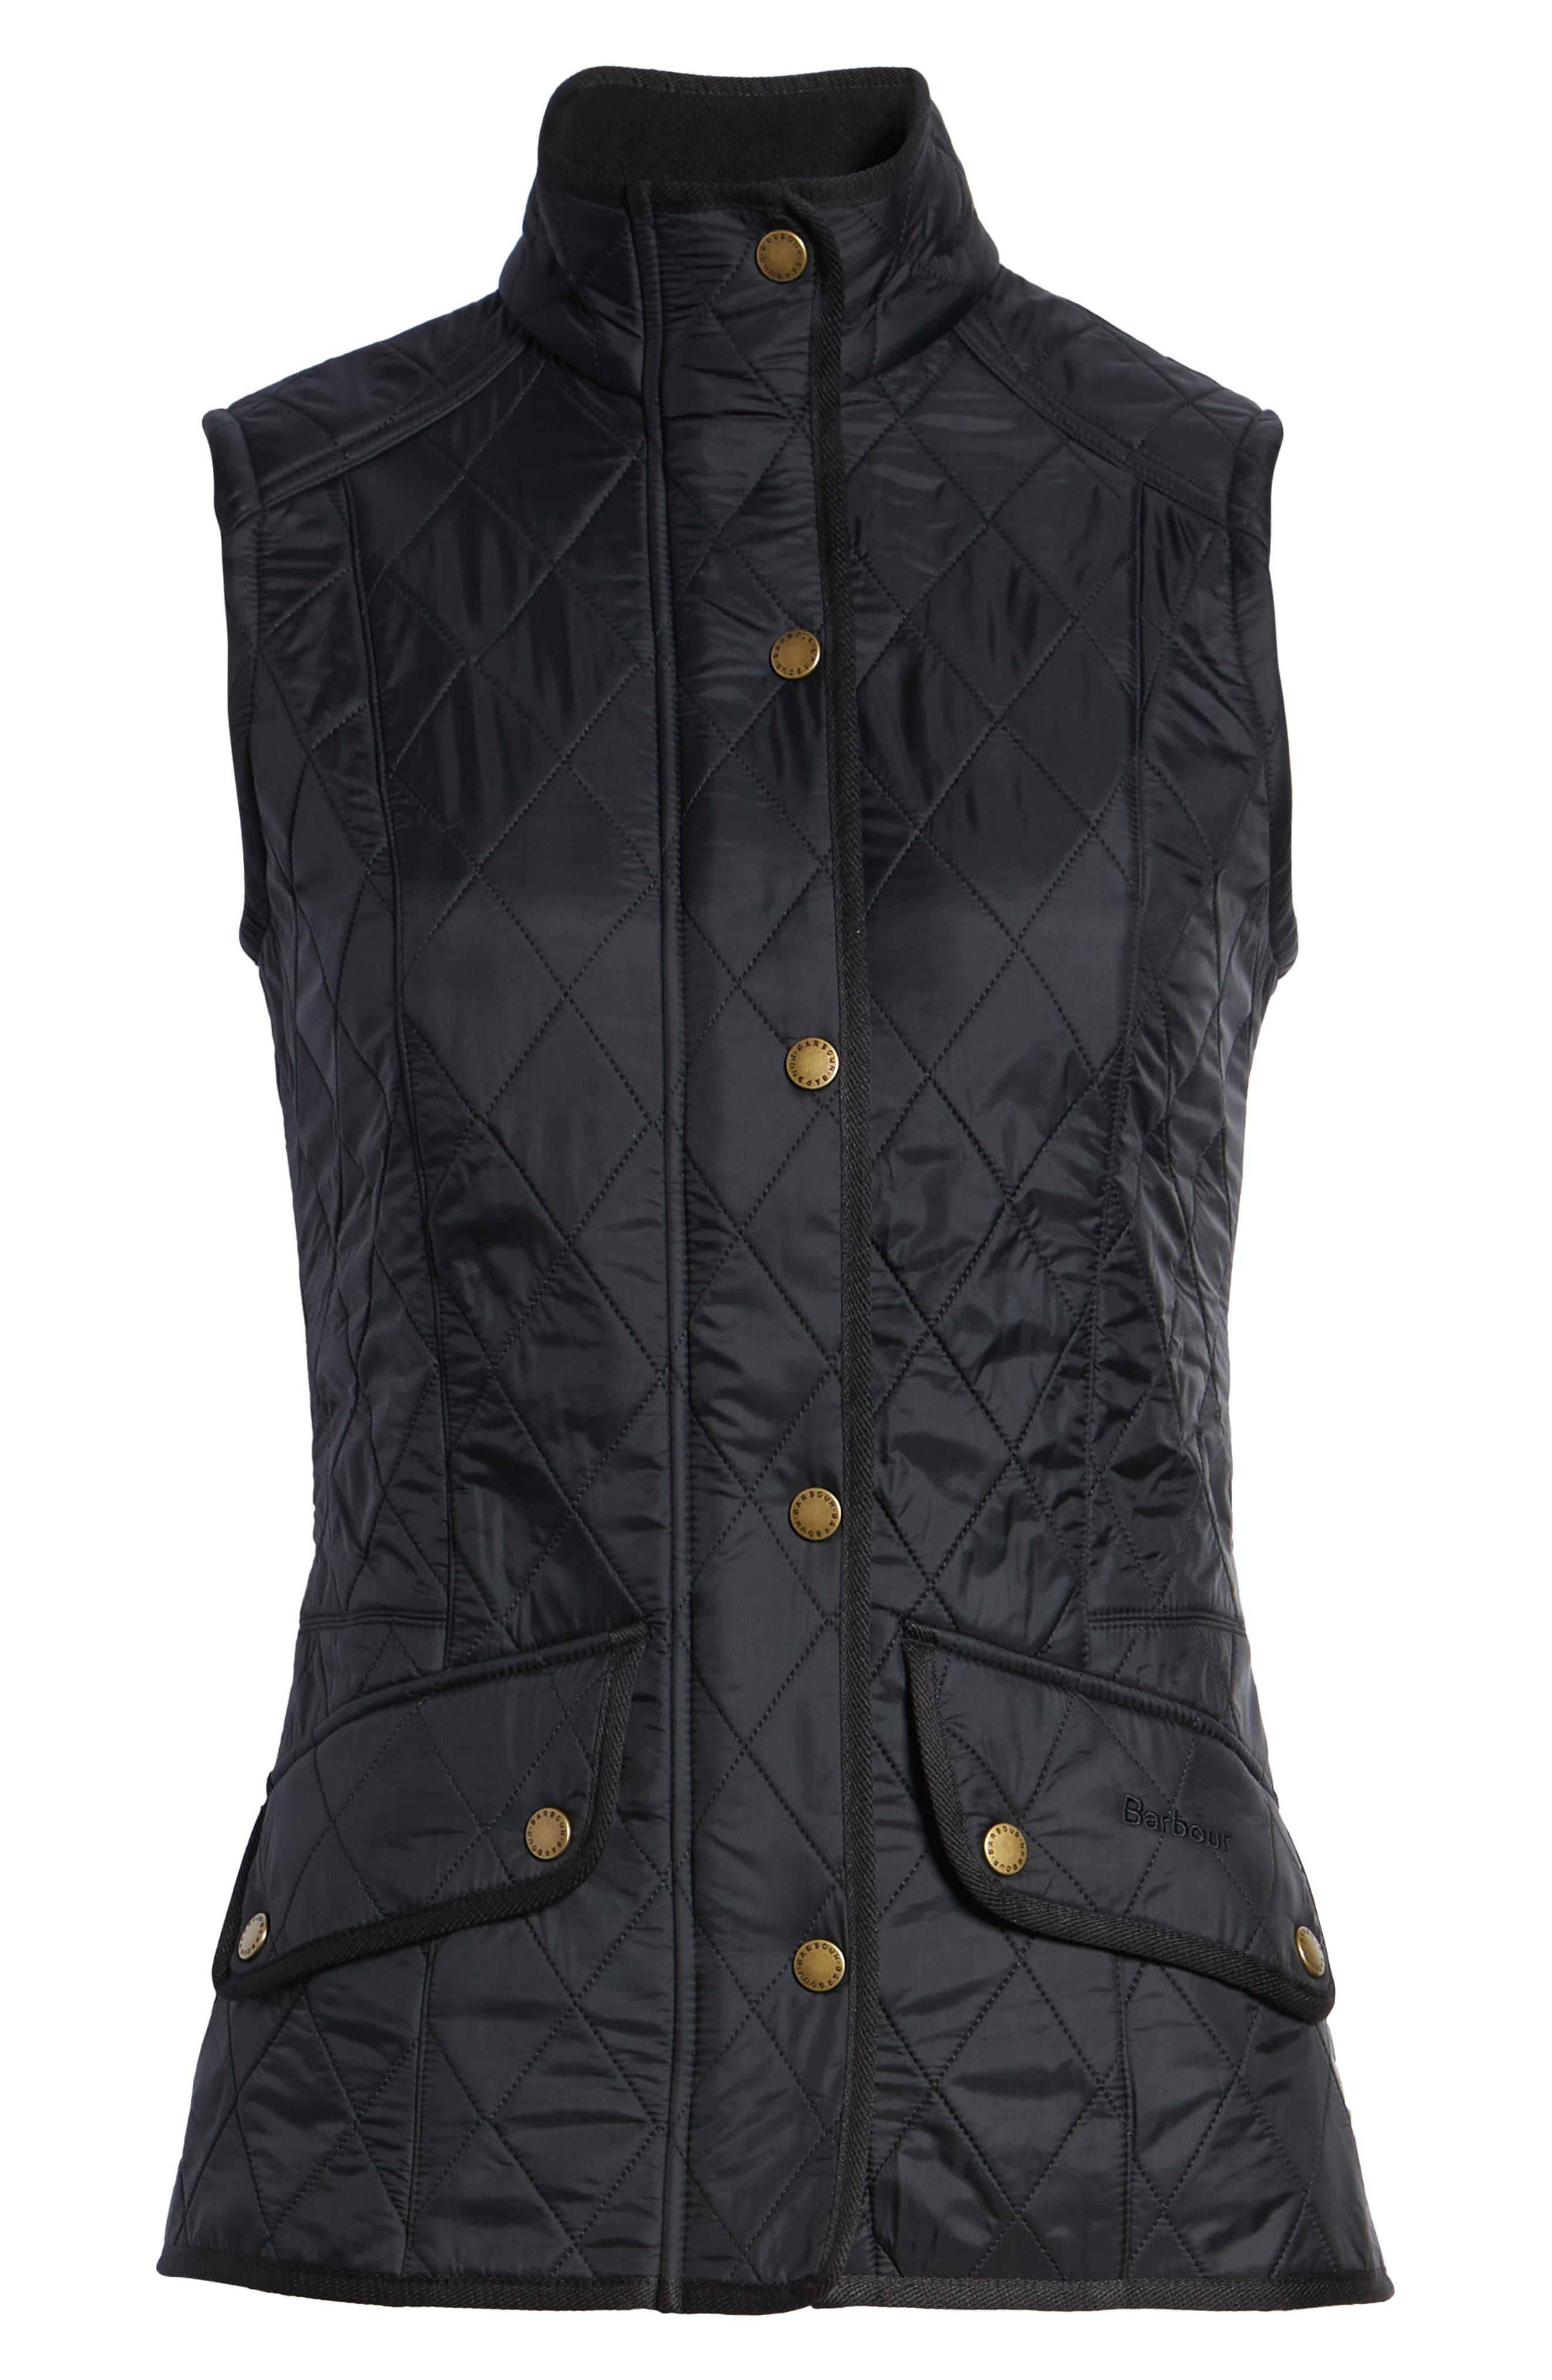 'Cavalry' Quilted Vest,                             Alternate thumbnail 7, color,                             BLACK/ BLACK